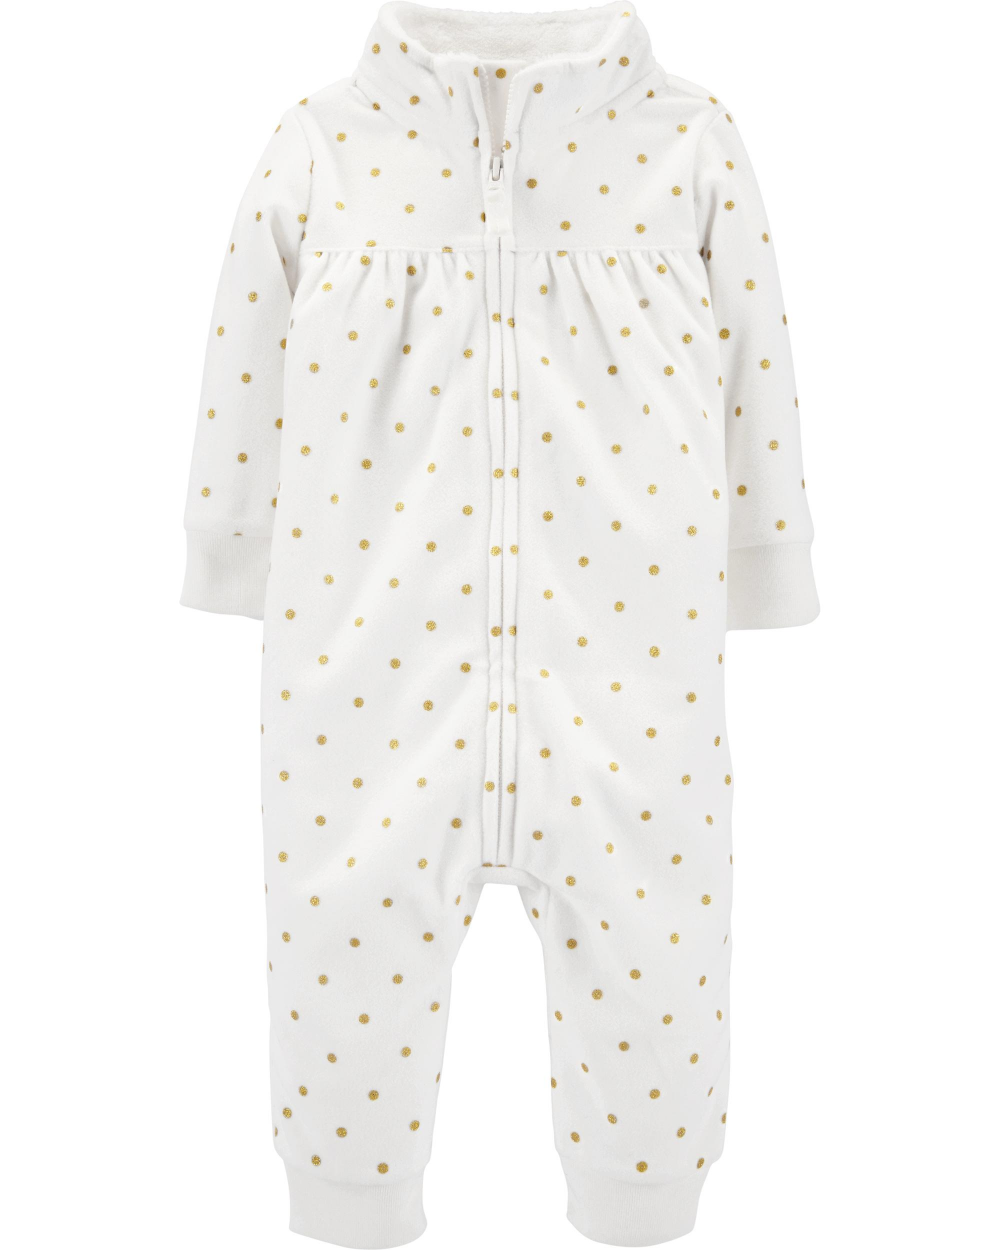 Carter/'s NWT 9M 24M Infant Girl Bow Fleece Jumpsuit Coverall